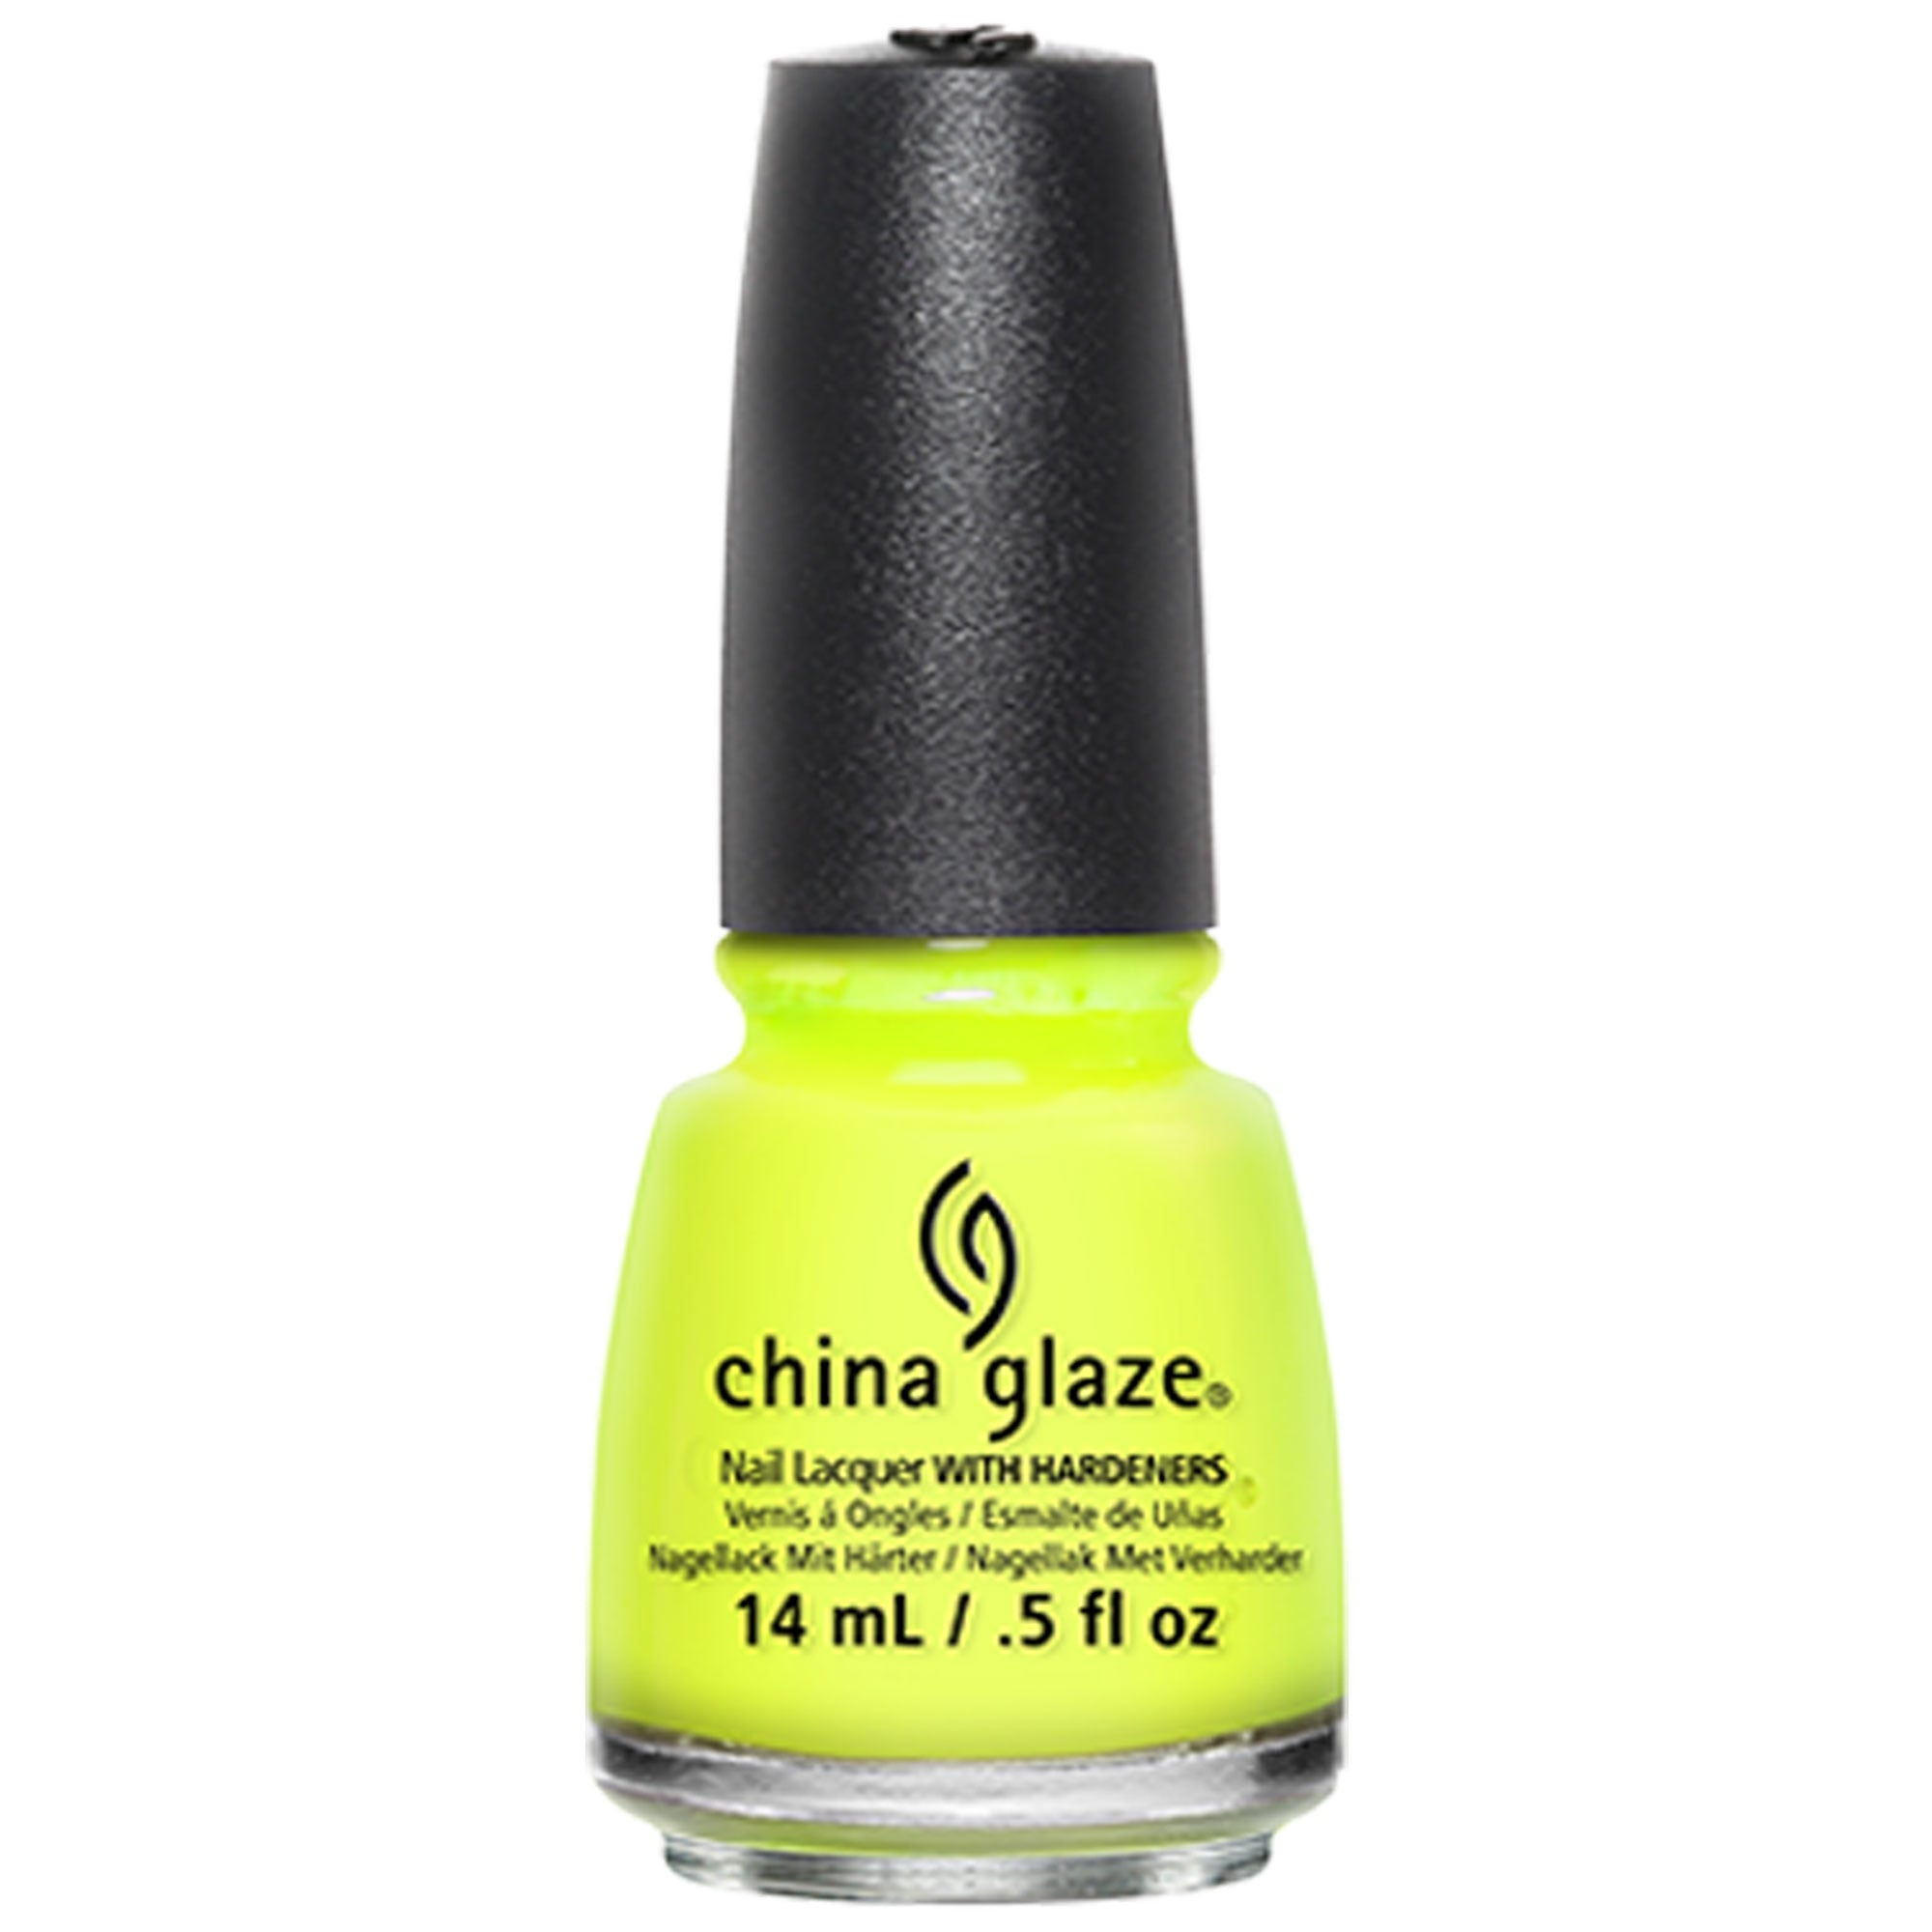 China Glaze Poolside Polish Collection 2010 Yellow Polka